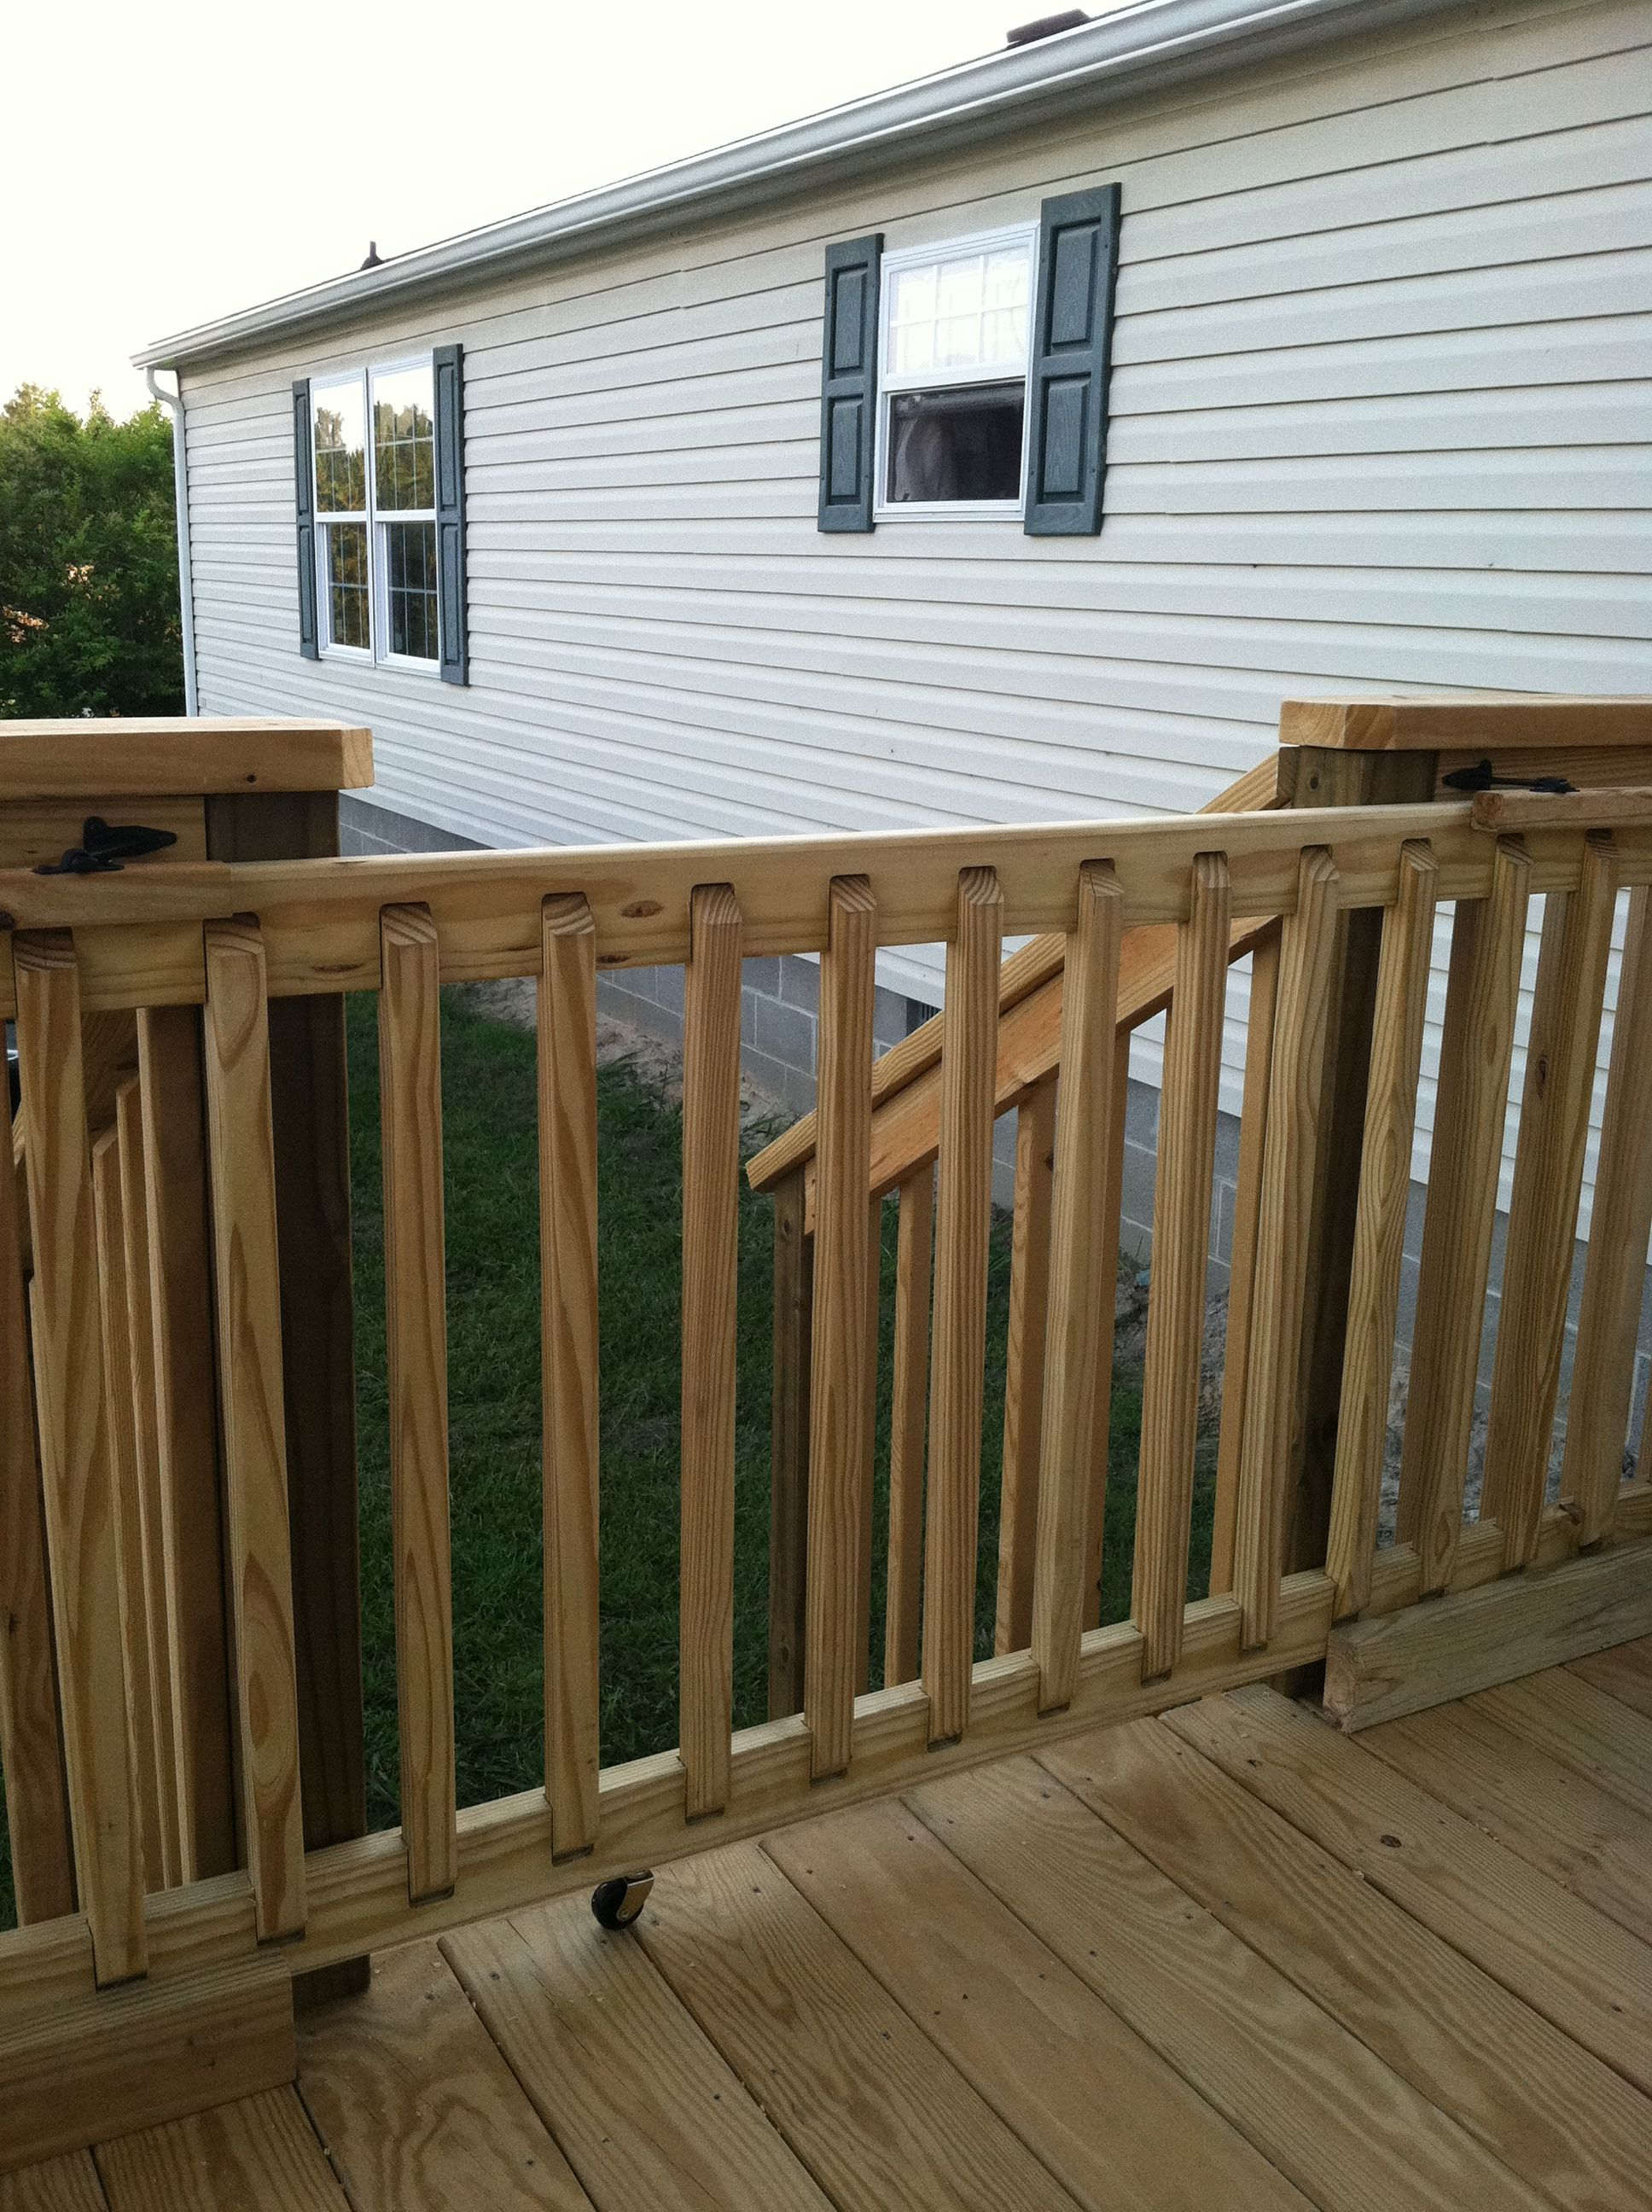 Diy Sliding Deck Gate Sliding Gate For Deck Manufactured Home Remodel Deck Gate